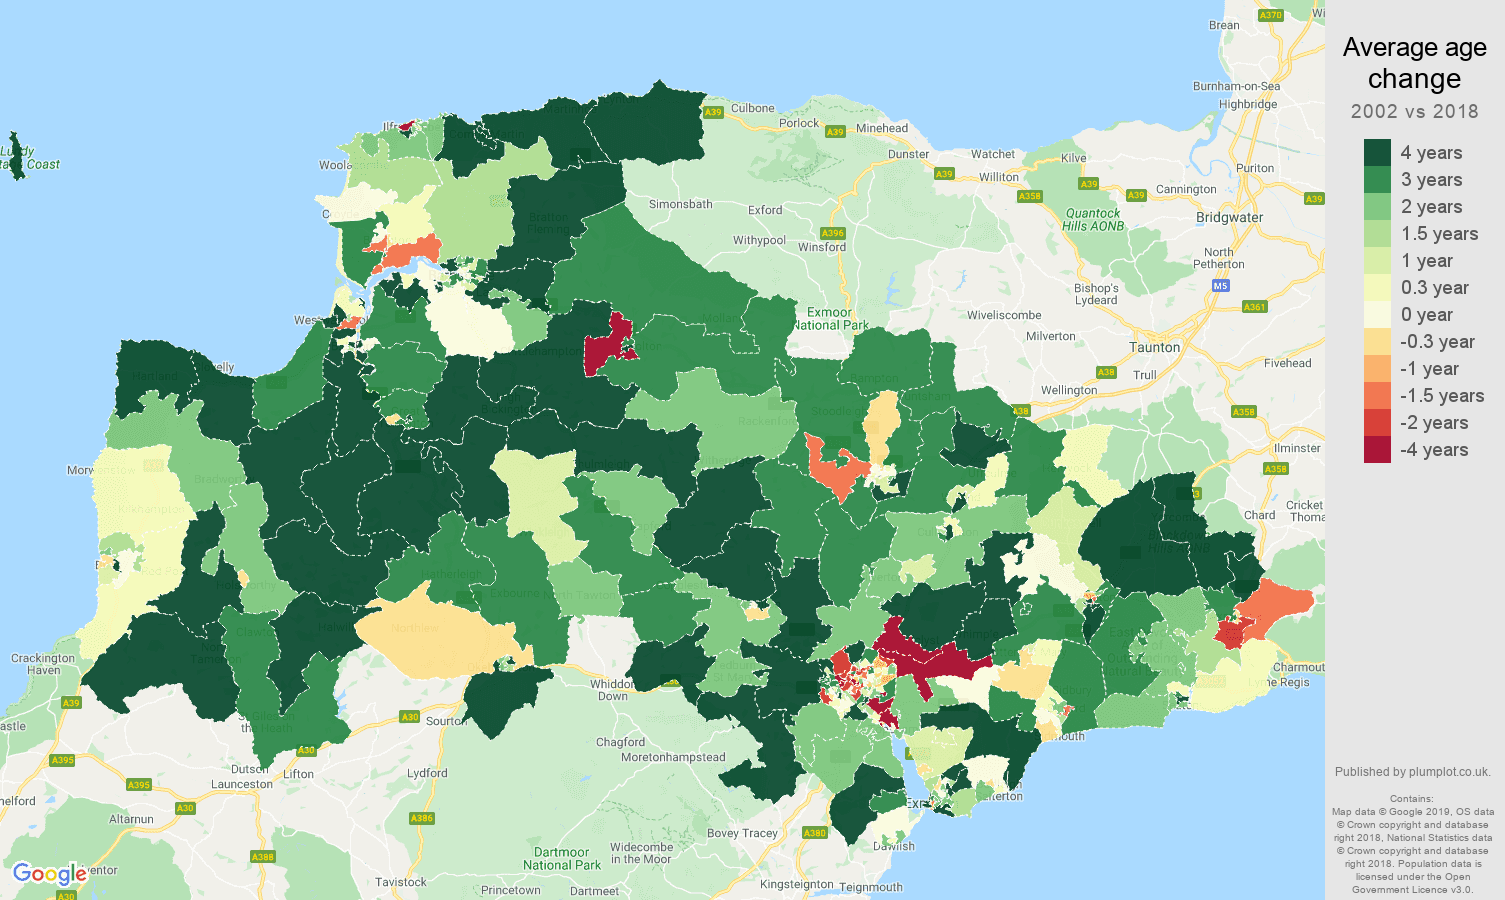 Exeter average age change map